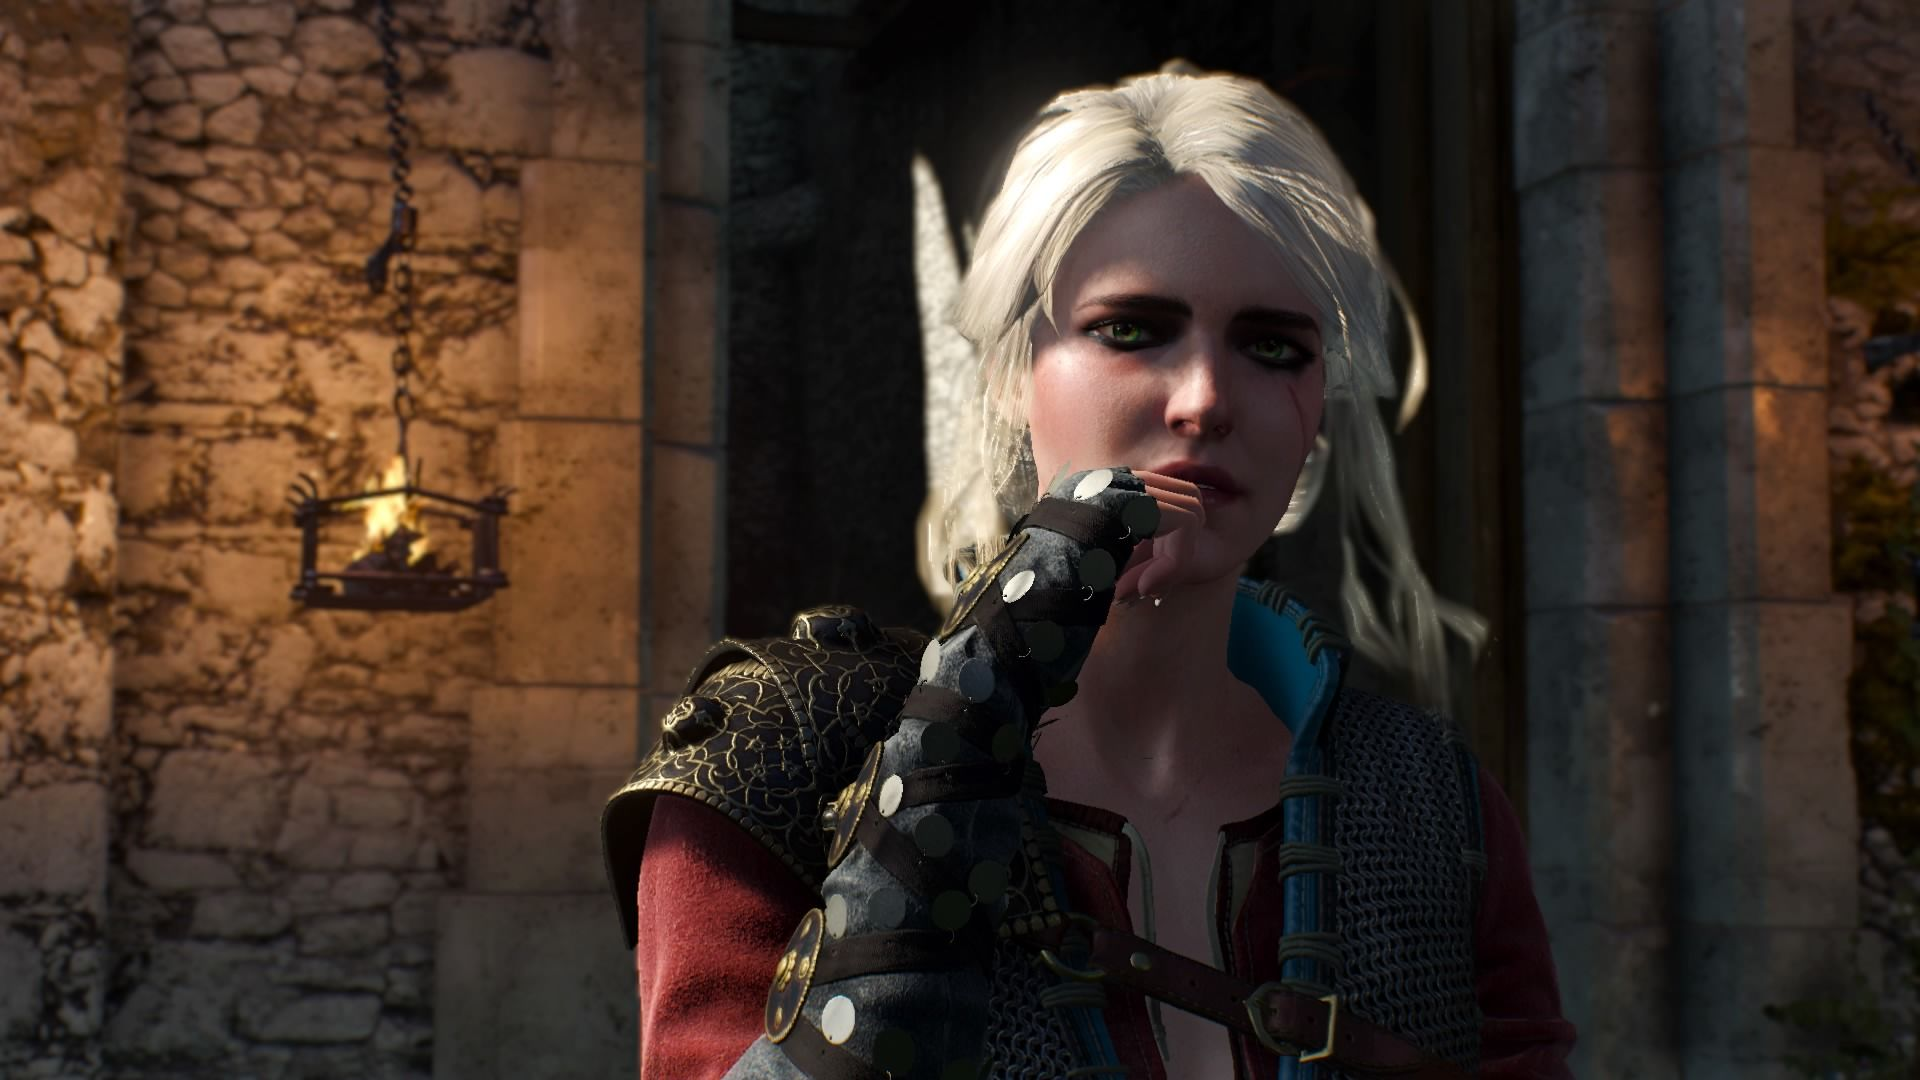 The Witcher 3: Wild Hunt - Alternative Look for Ciri